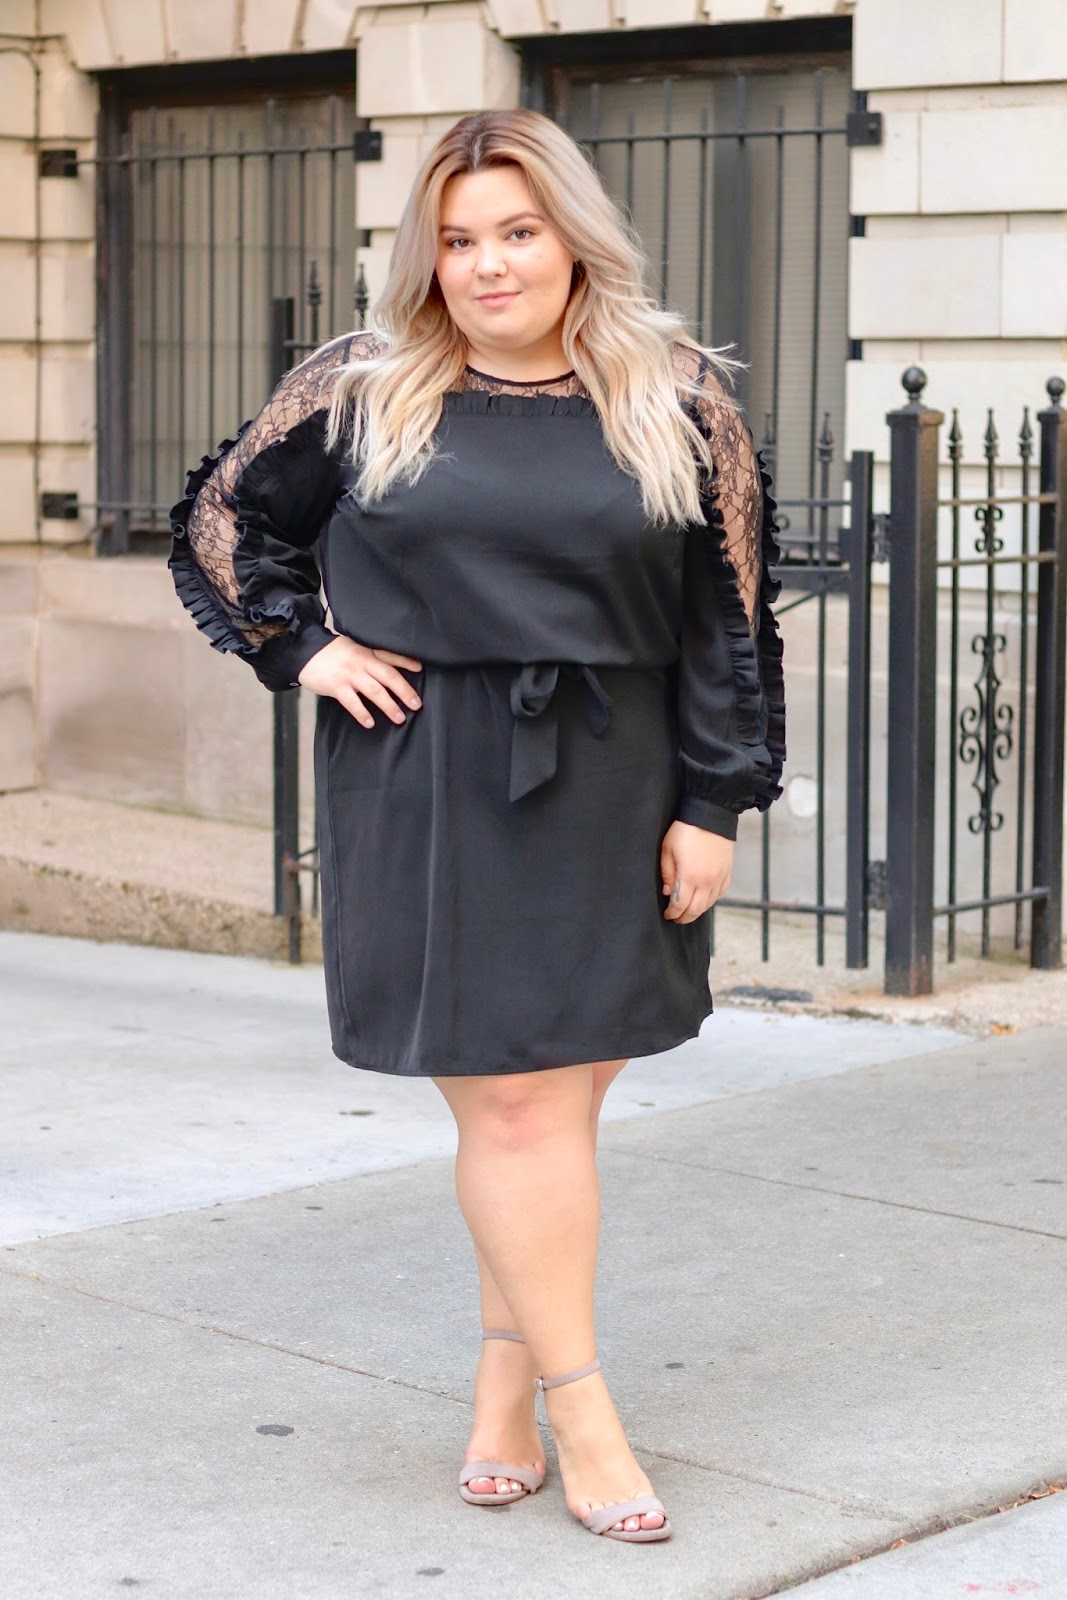 plus size fashion, plus size fashion blogger, Chicago blogger, natalie in the city, eloquii, the shops at Northbridge, eloquii Chicago, plus size dresses for work, plus size office outfits, affordable plus size clothing, curves and confidence, fatshion